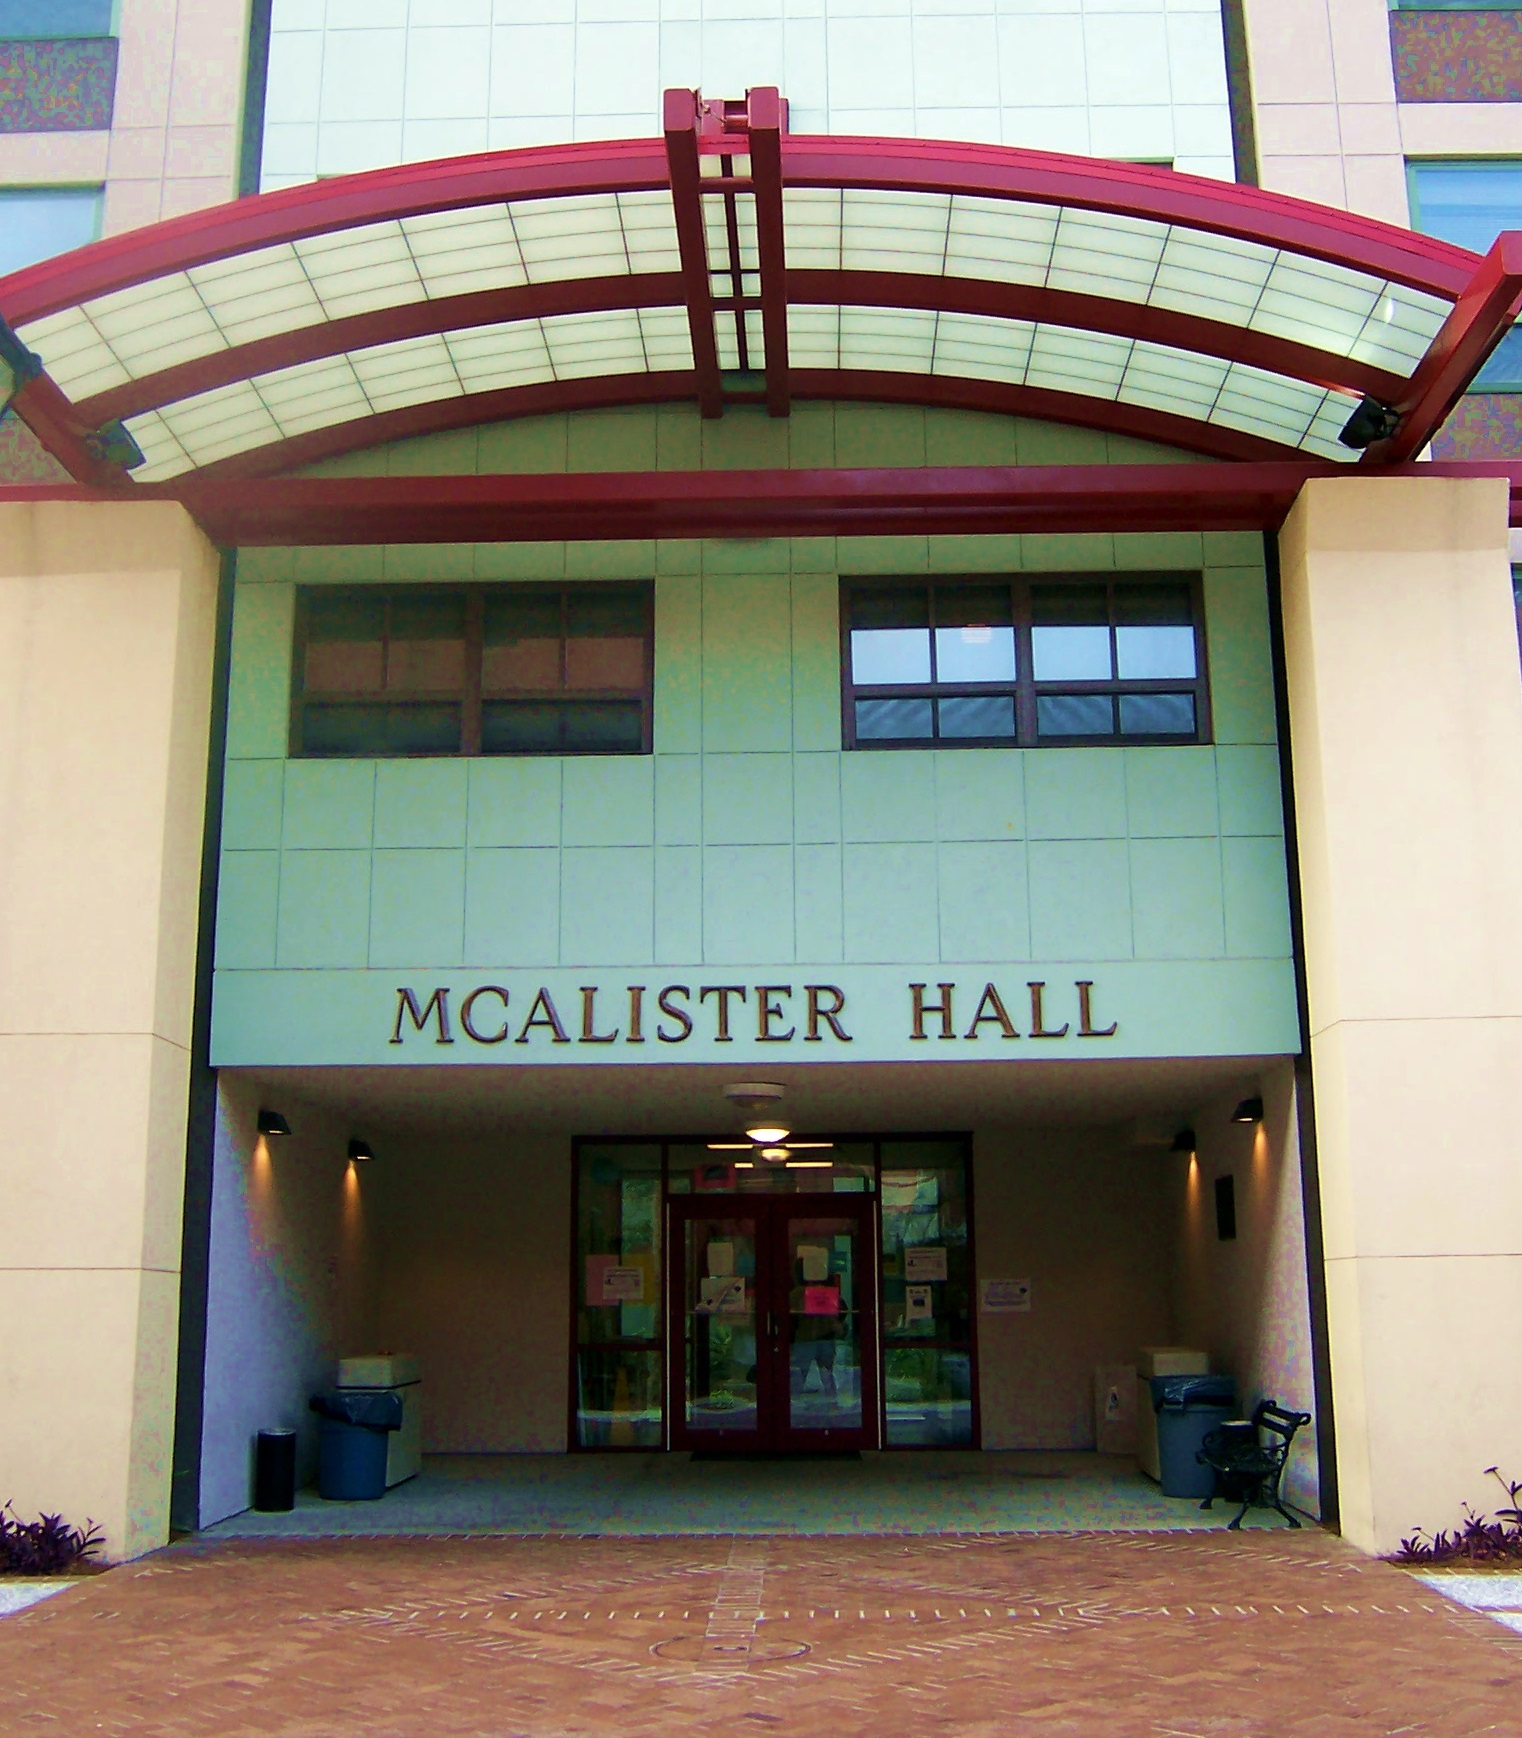 Marcia kelly mcalister hall college of charleston marcia kelly mcalister hall malvernweather Images